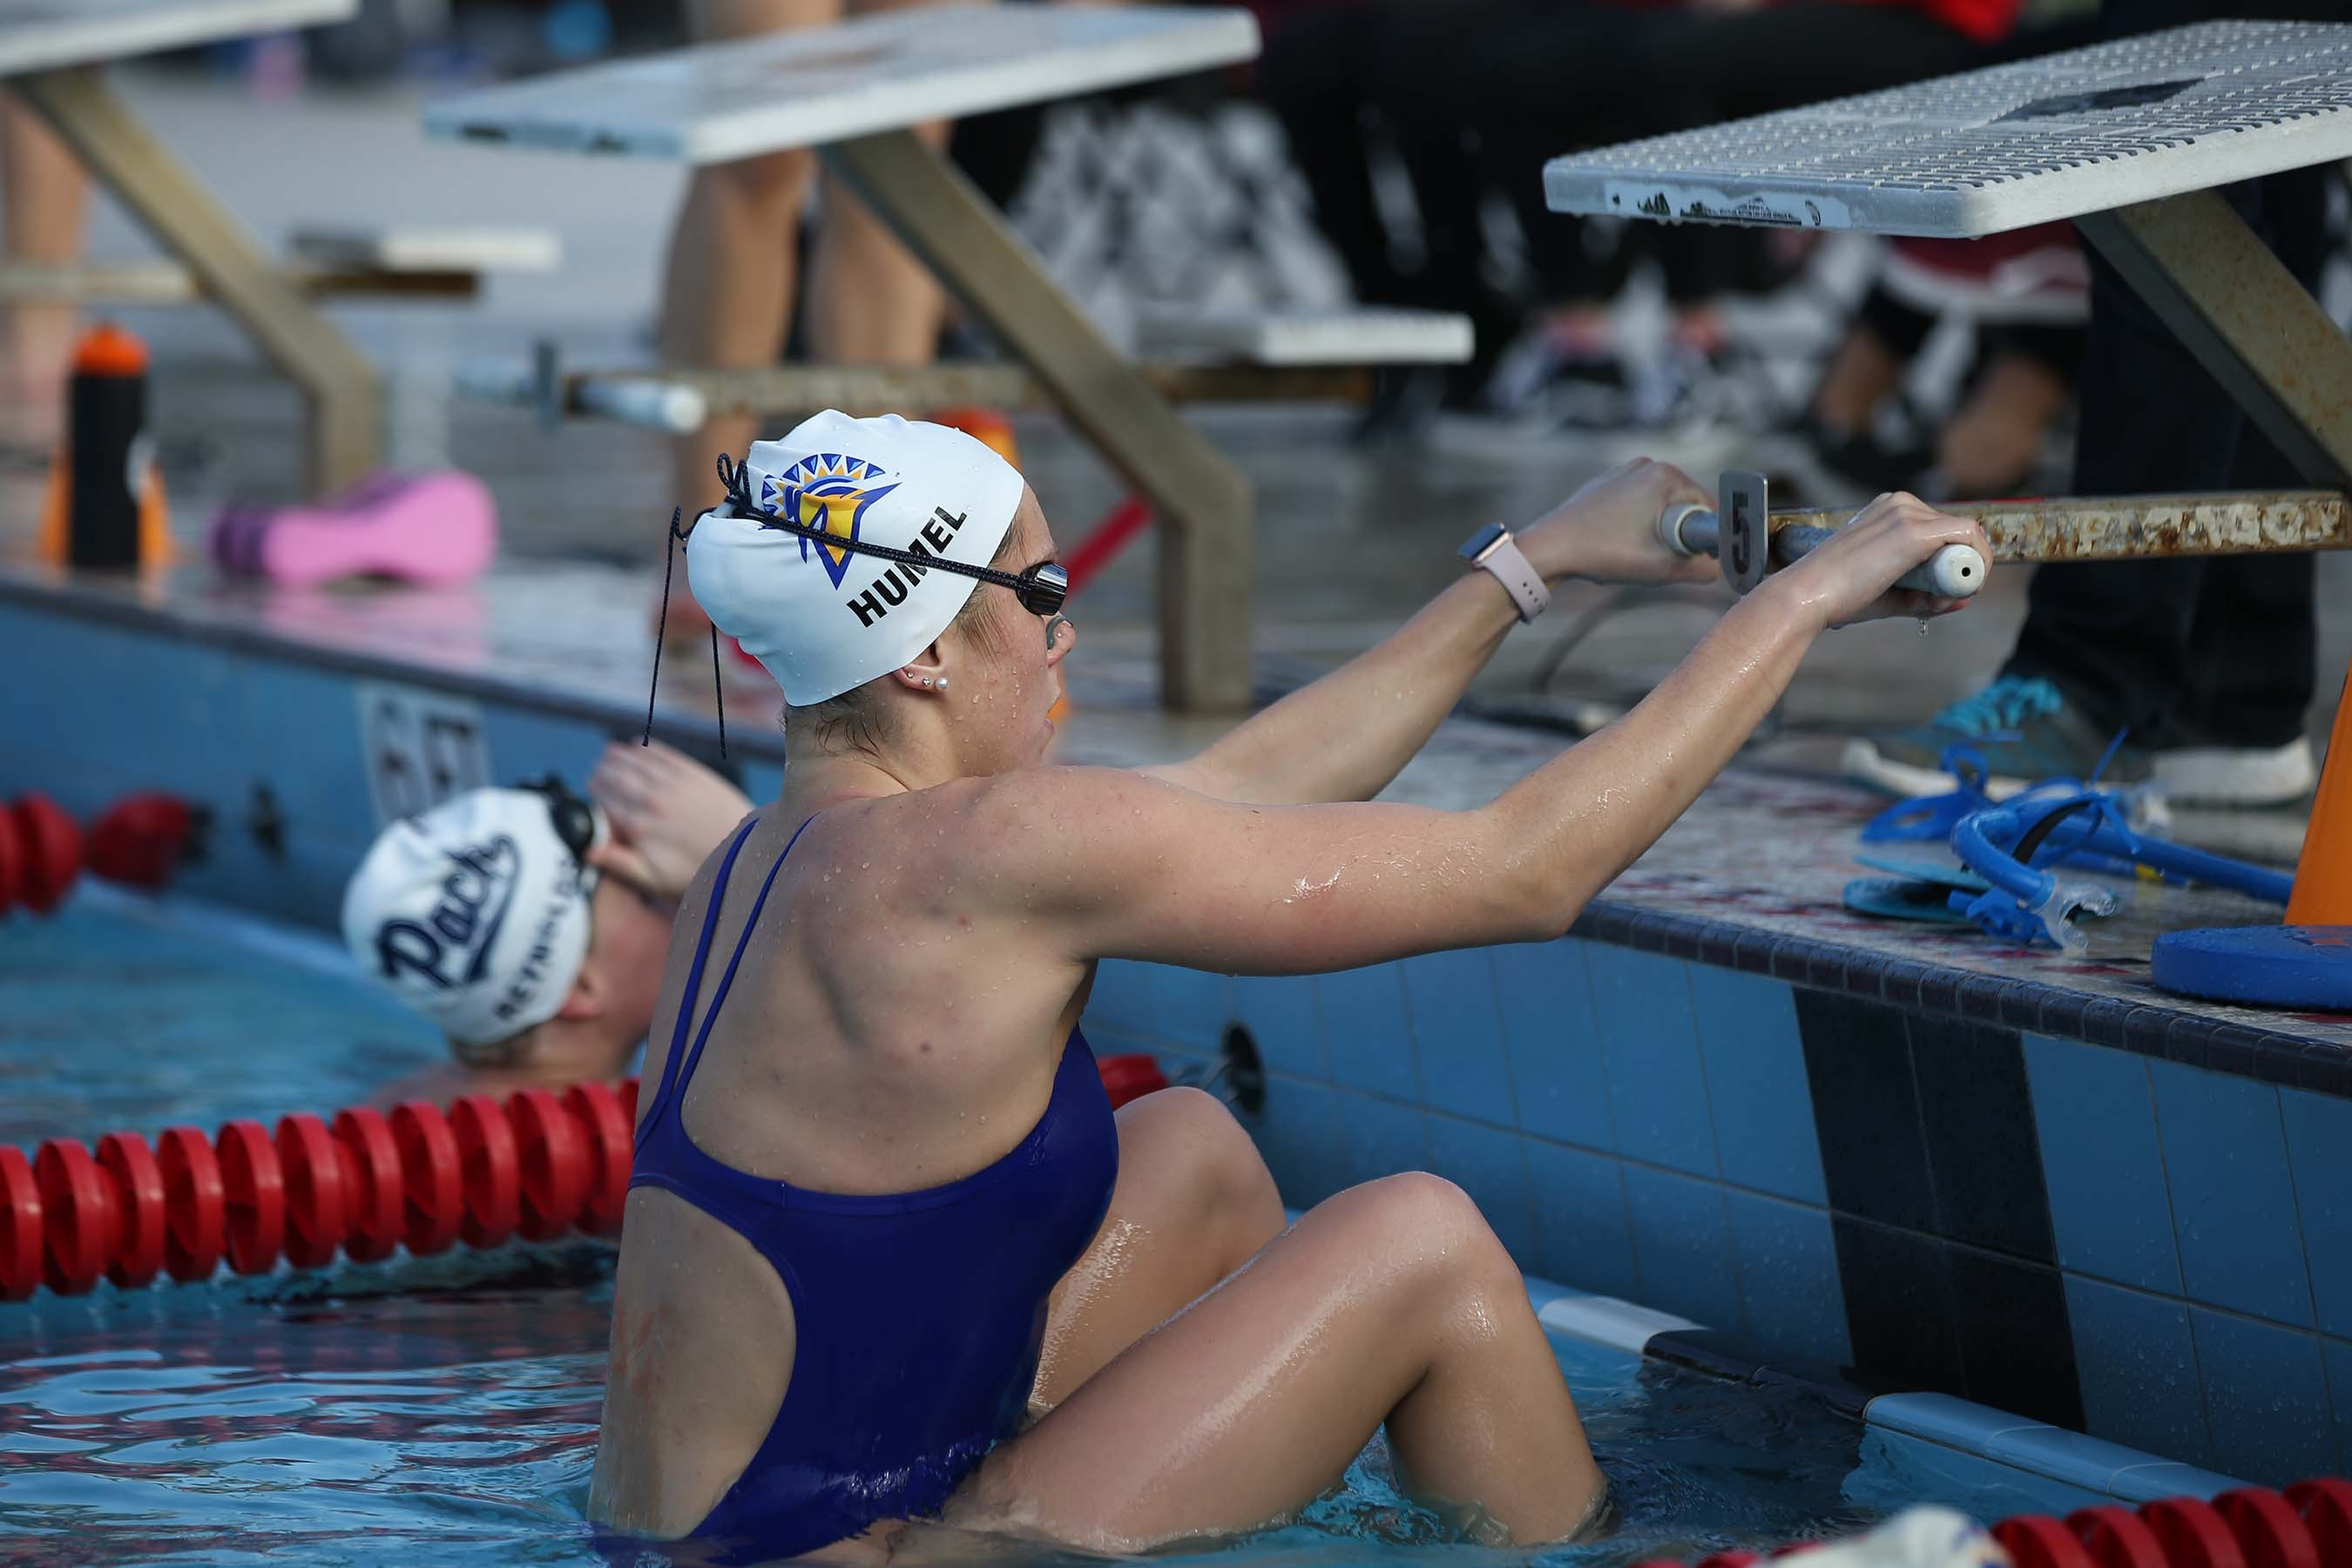 Colleen humel 2017 18 women 39 s swimming and diving roster - San jose state university swimming pool ...